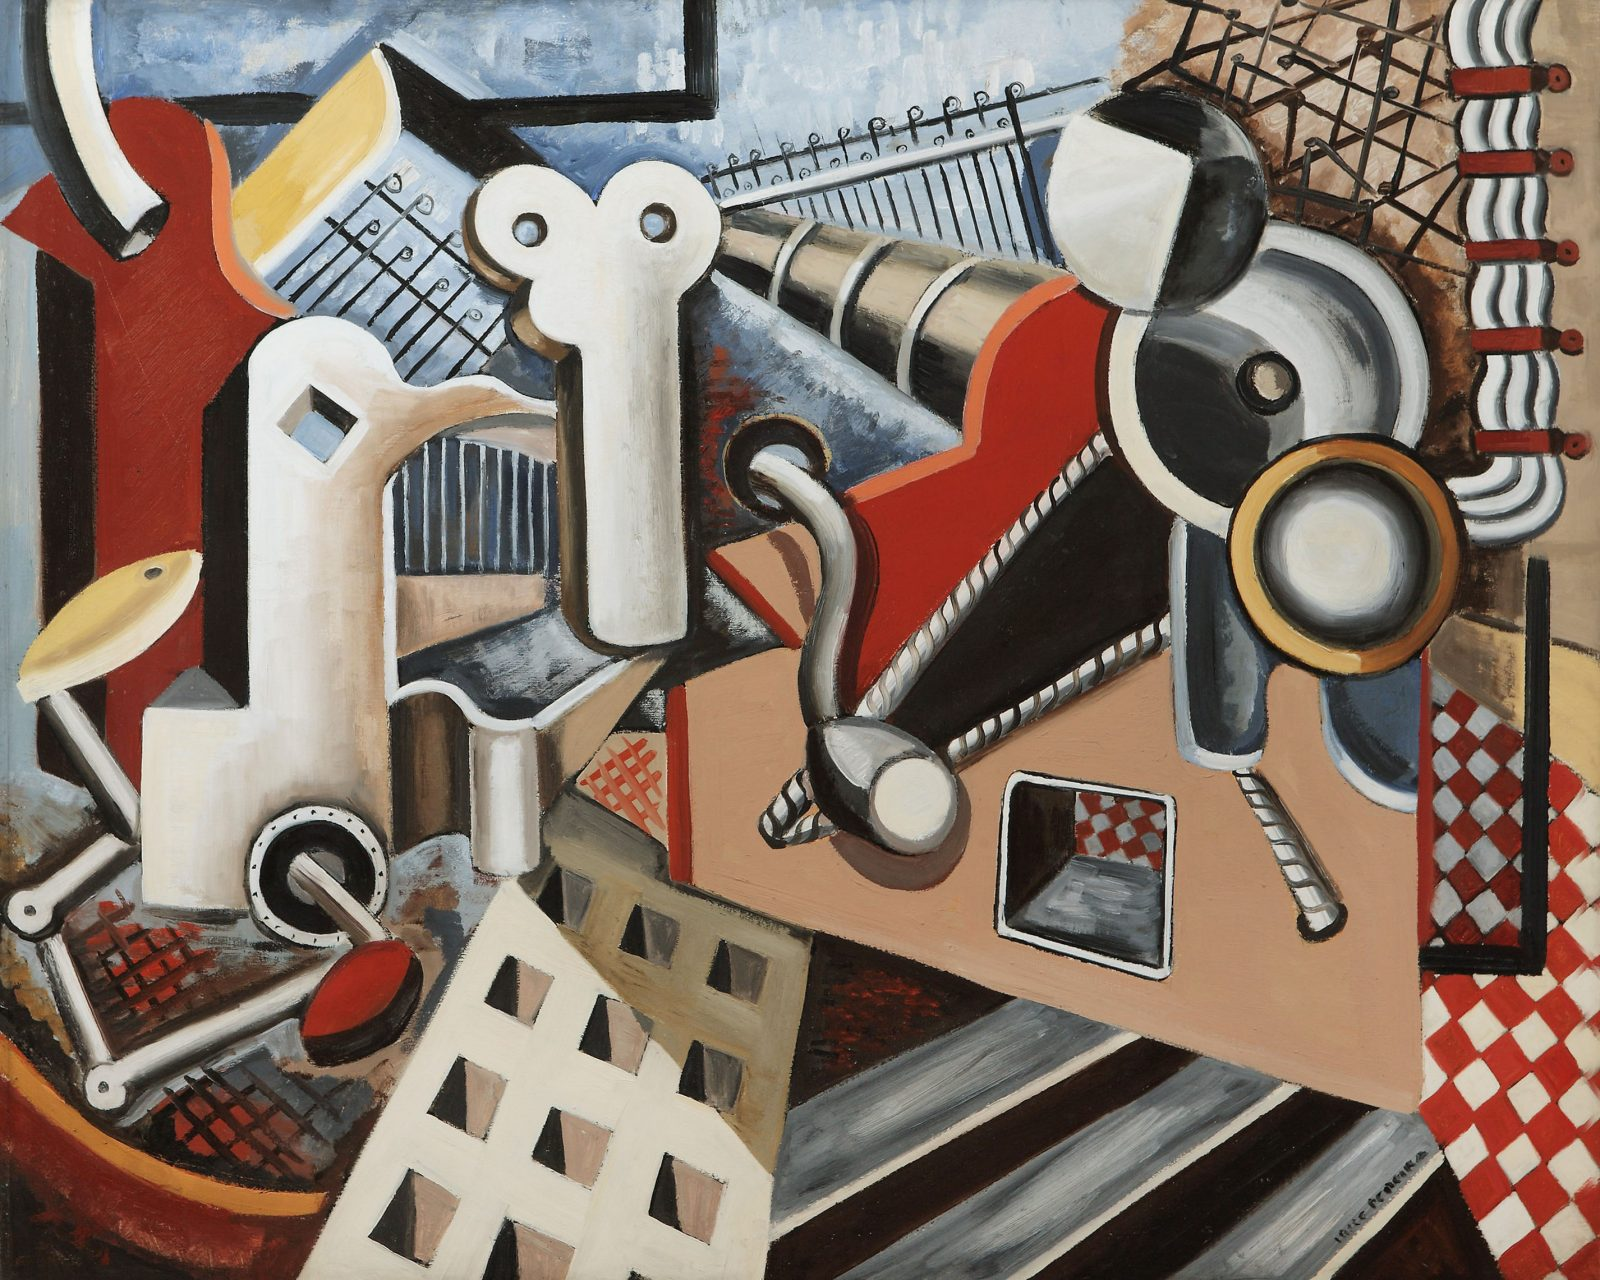 This work by Irene Rice Pereira shows an industrial composition inspired by cubism